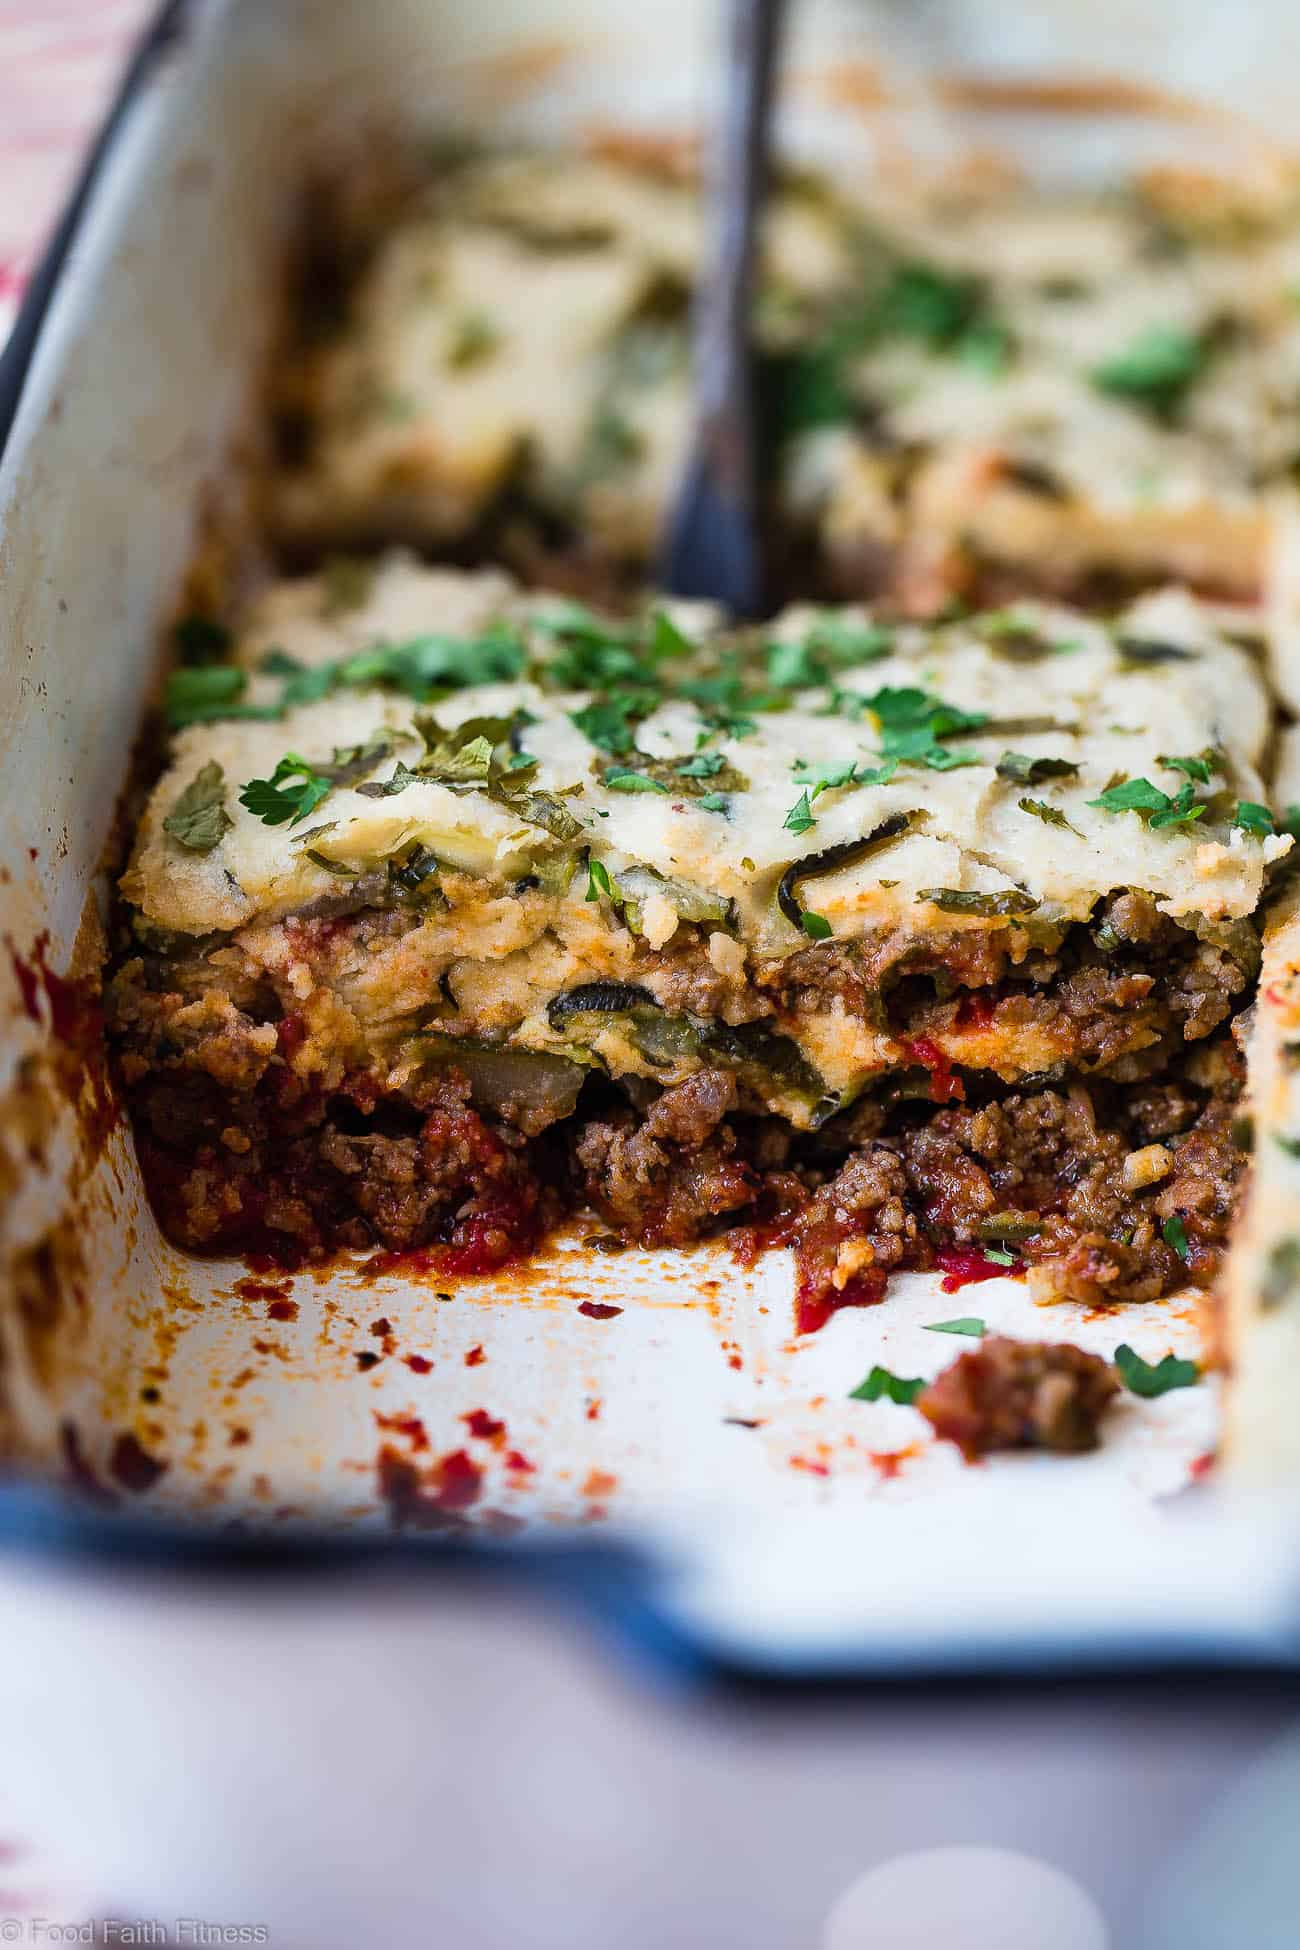 Low Carb Paleo Zucchini Lasagna - You will never know this family-pleasing lasagna is gluten/grain/dairy free, low carb and whole30 compliant! Not even the pickiest eaters will miss the cheese and pasta! | #Foodfaithfitness | #Paleo #whole30 #lowcarb #lasagna #glutenfree